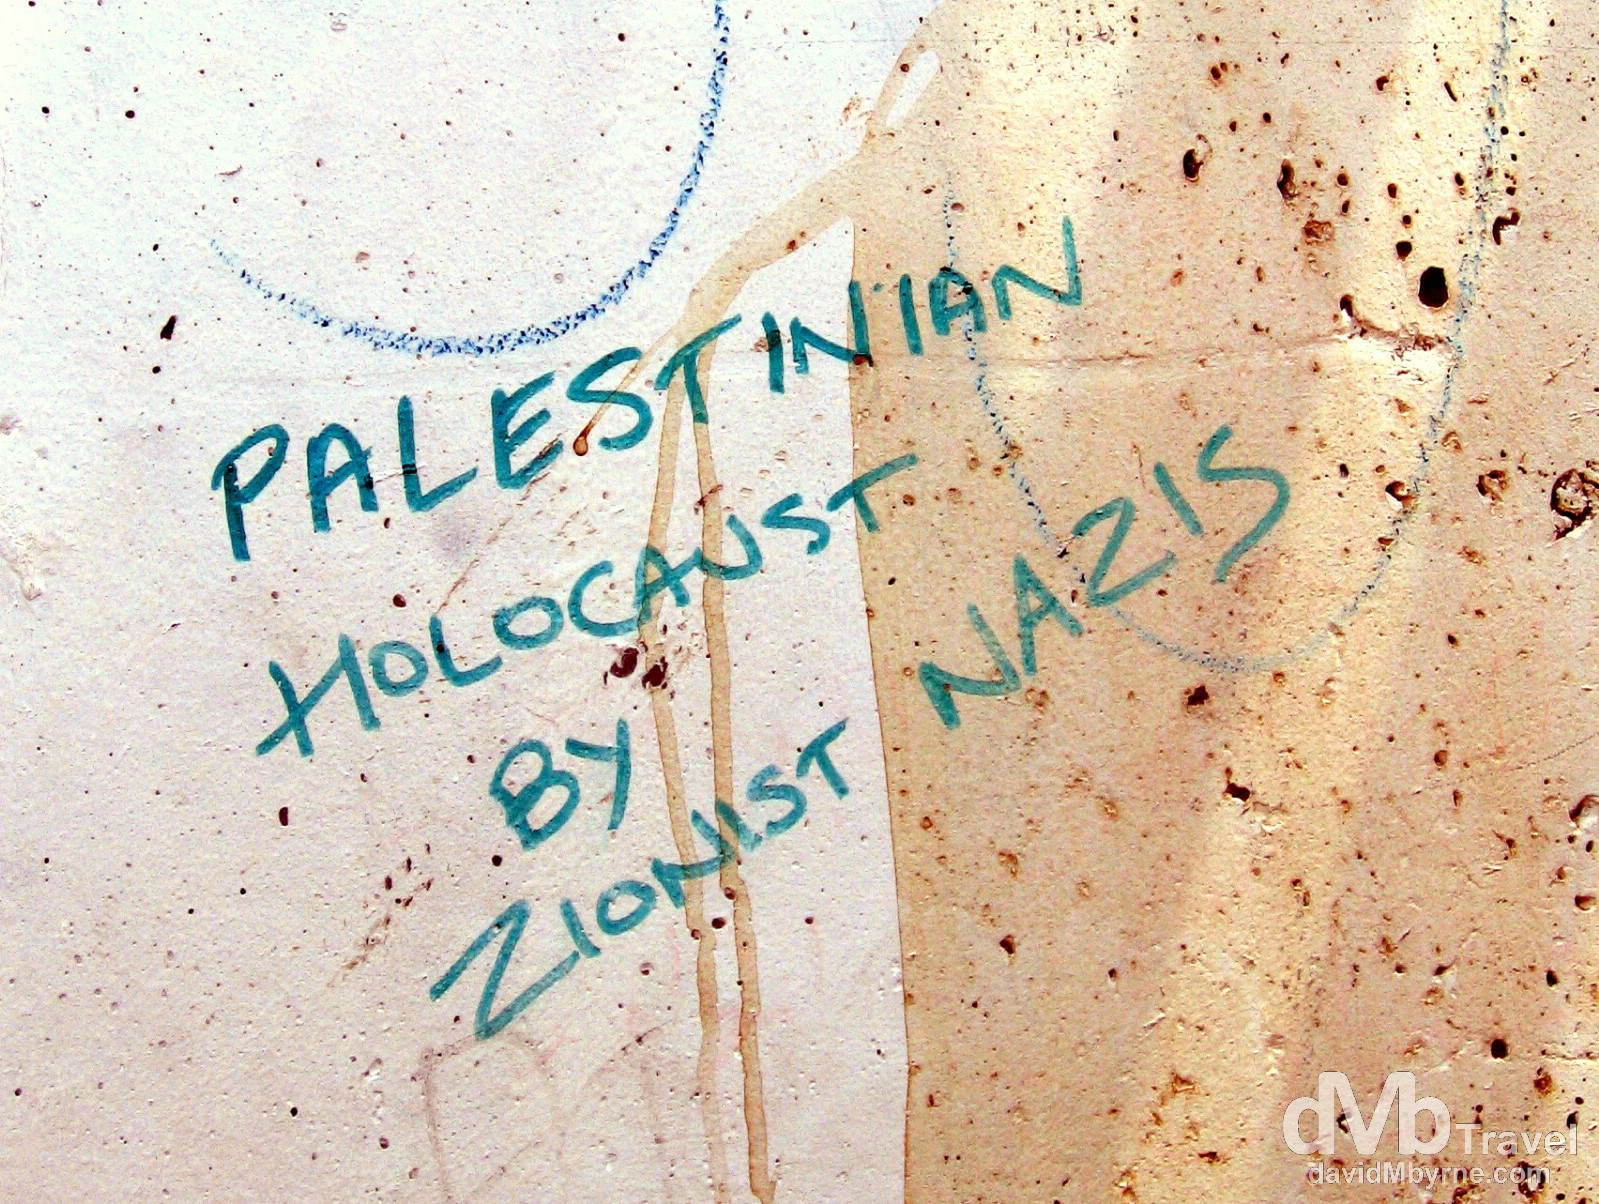 Palestinian Holocaust. A section of the heavily guarded wall separating the Palestinian West Back from Israel. May 2, 2008.